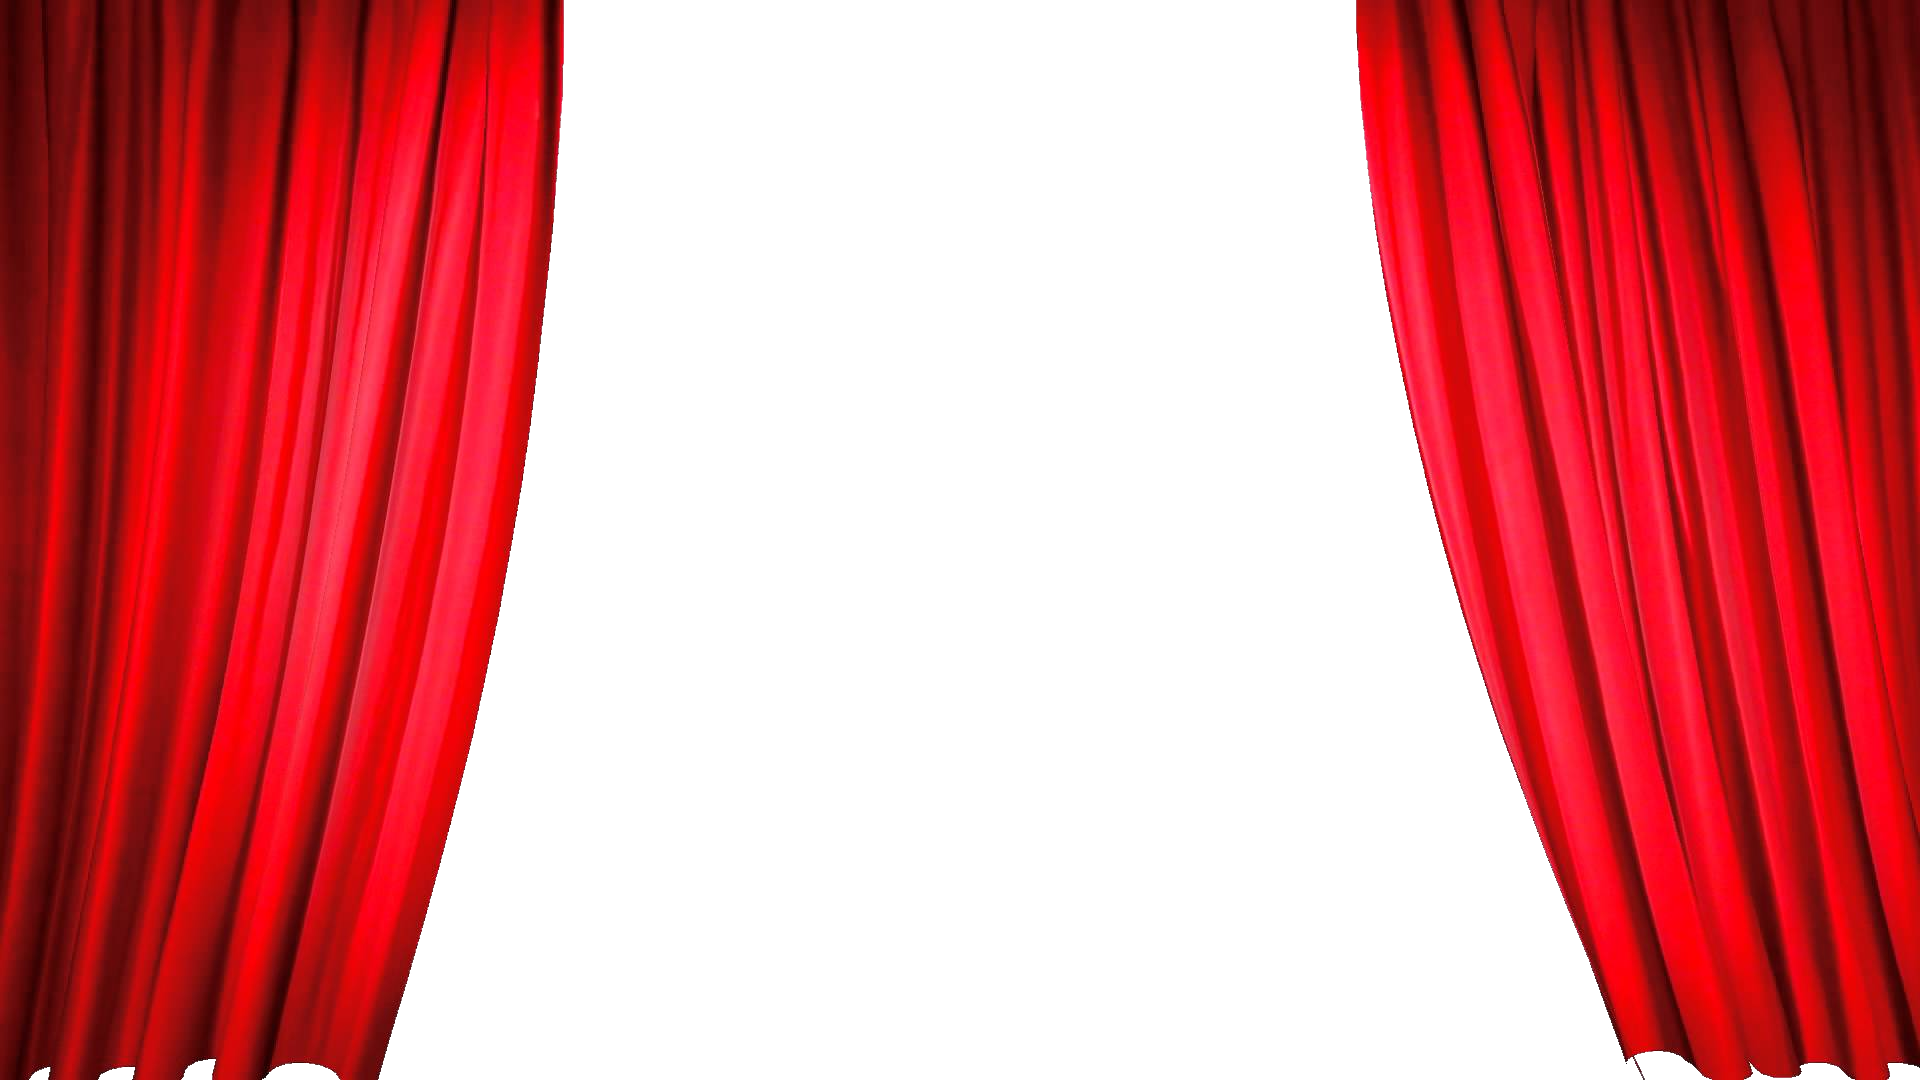 Stage background png. Curtains image purepng free